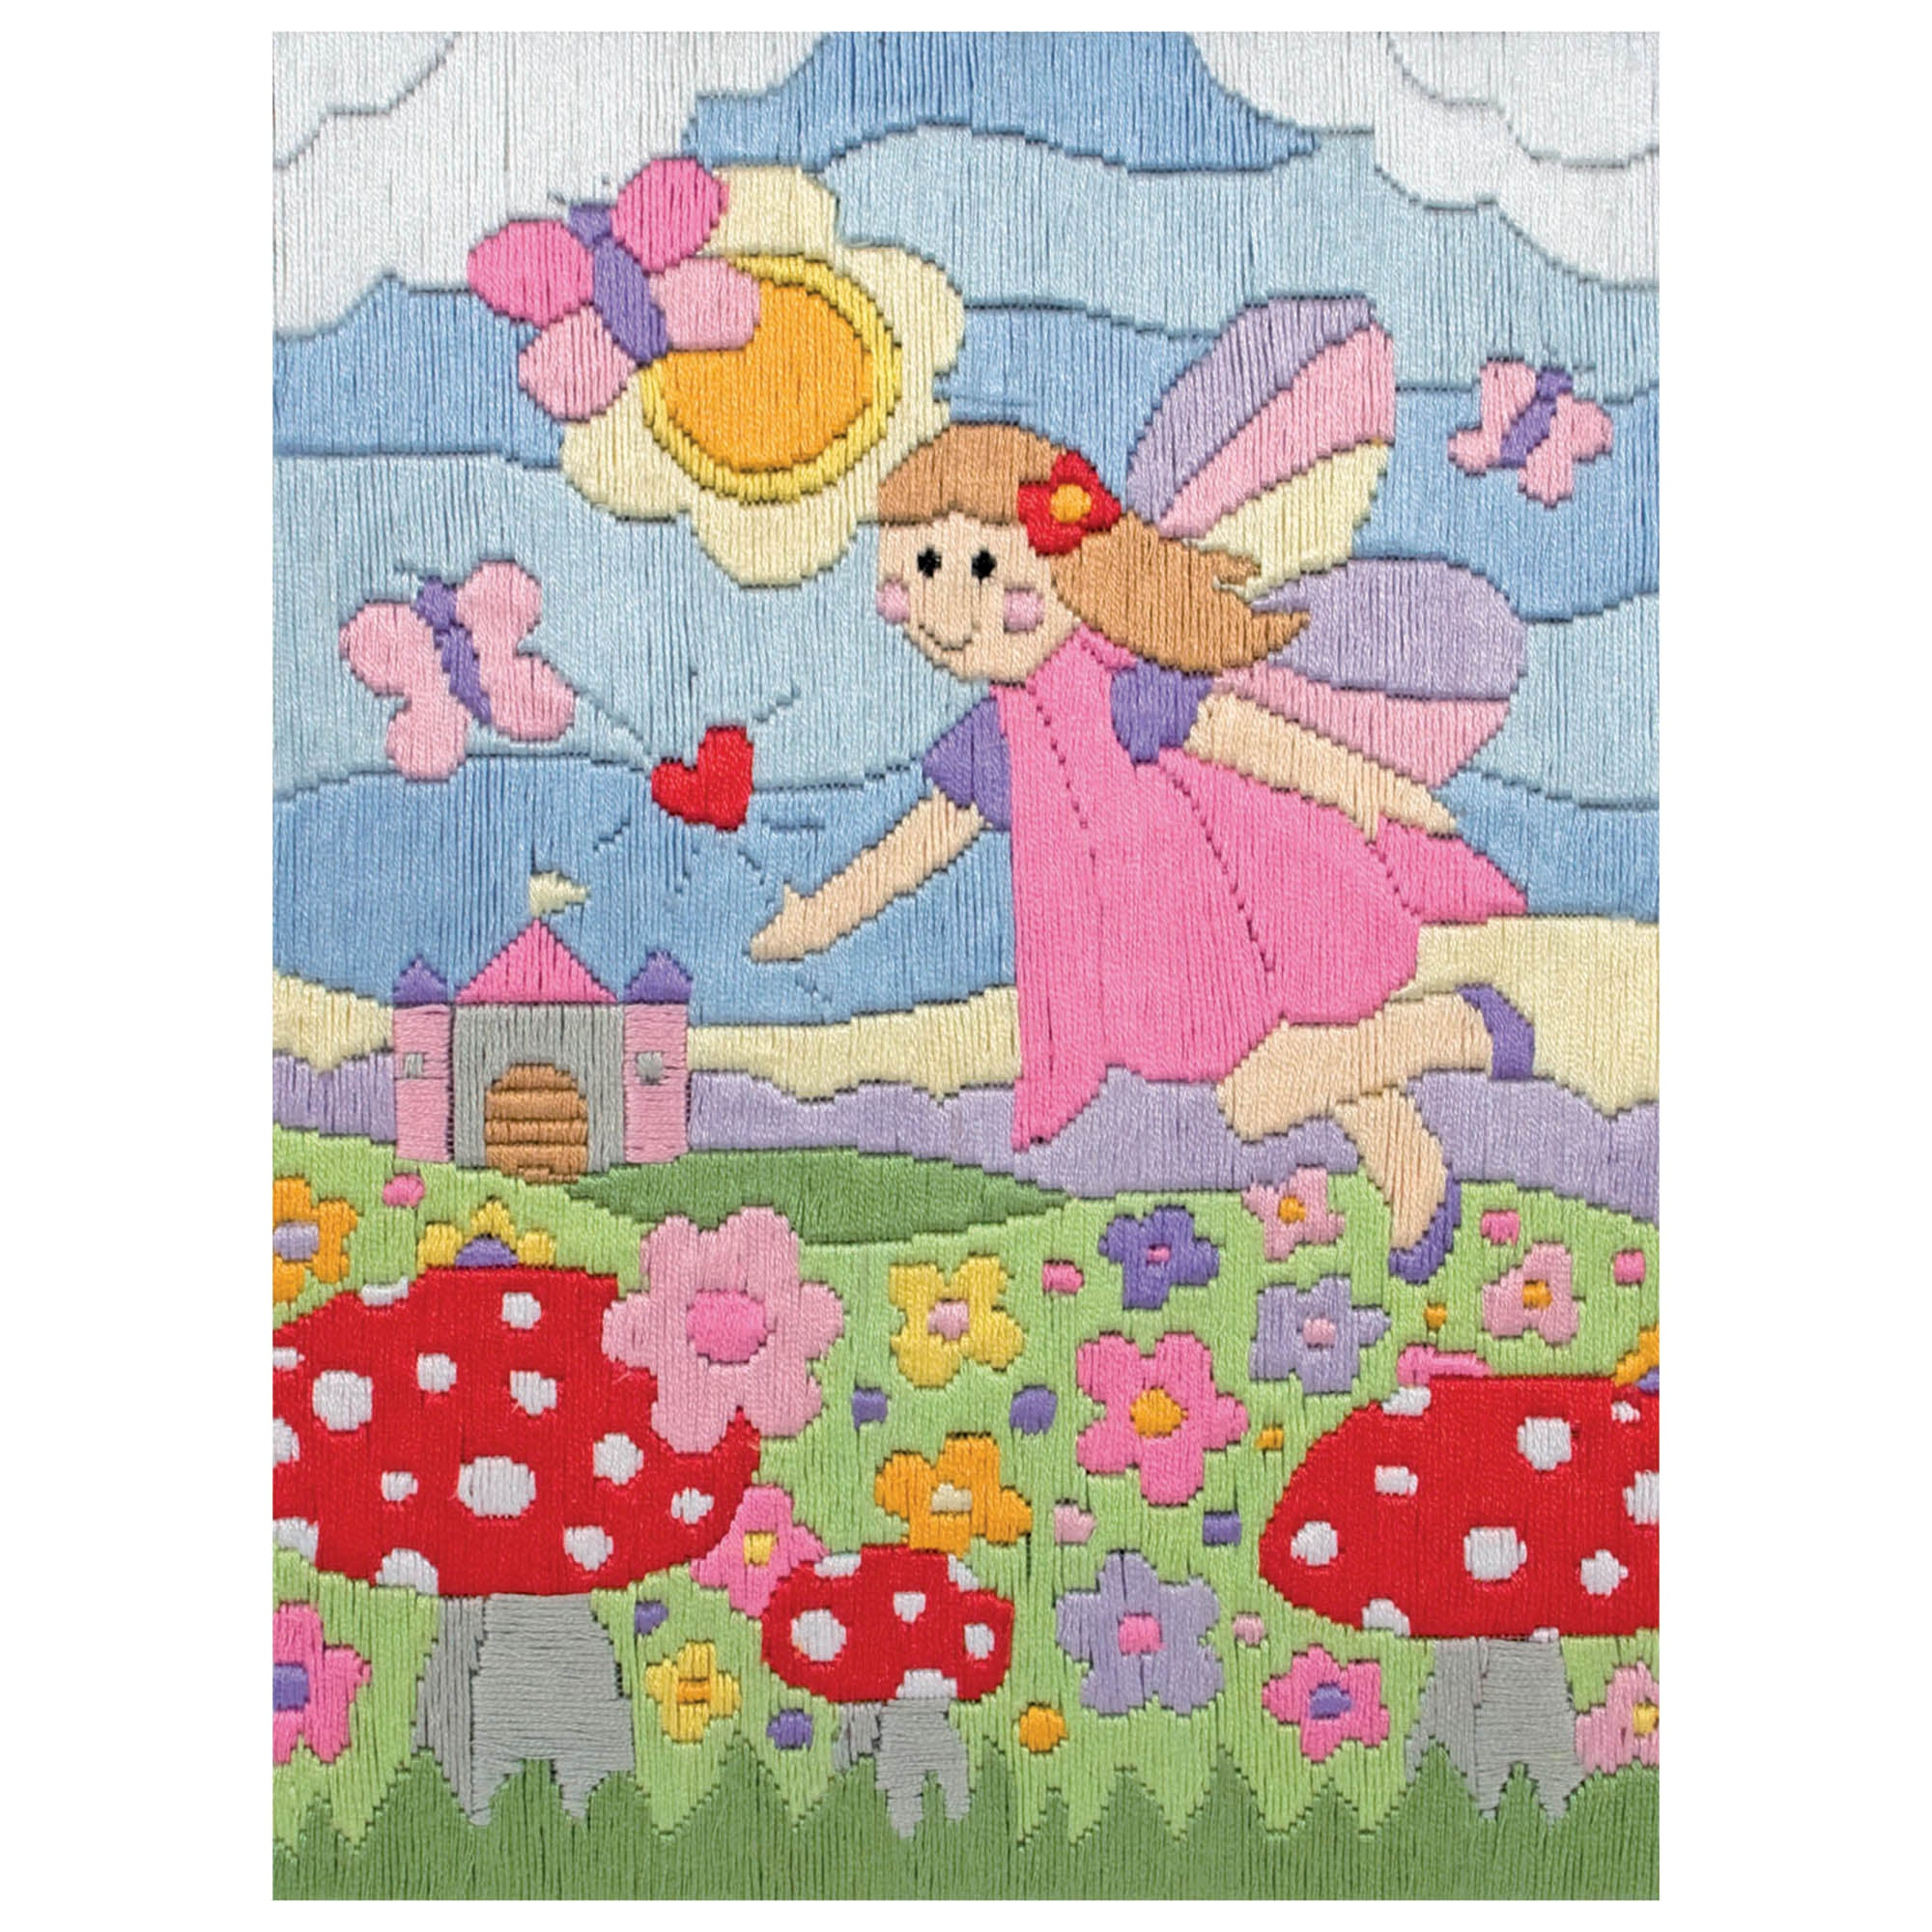 Anchor Fairy Land Long Stitch Kit